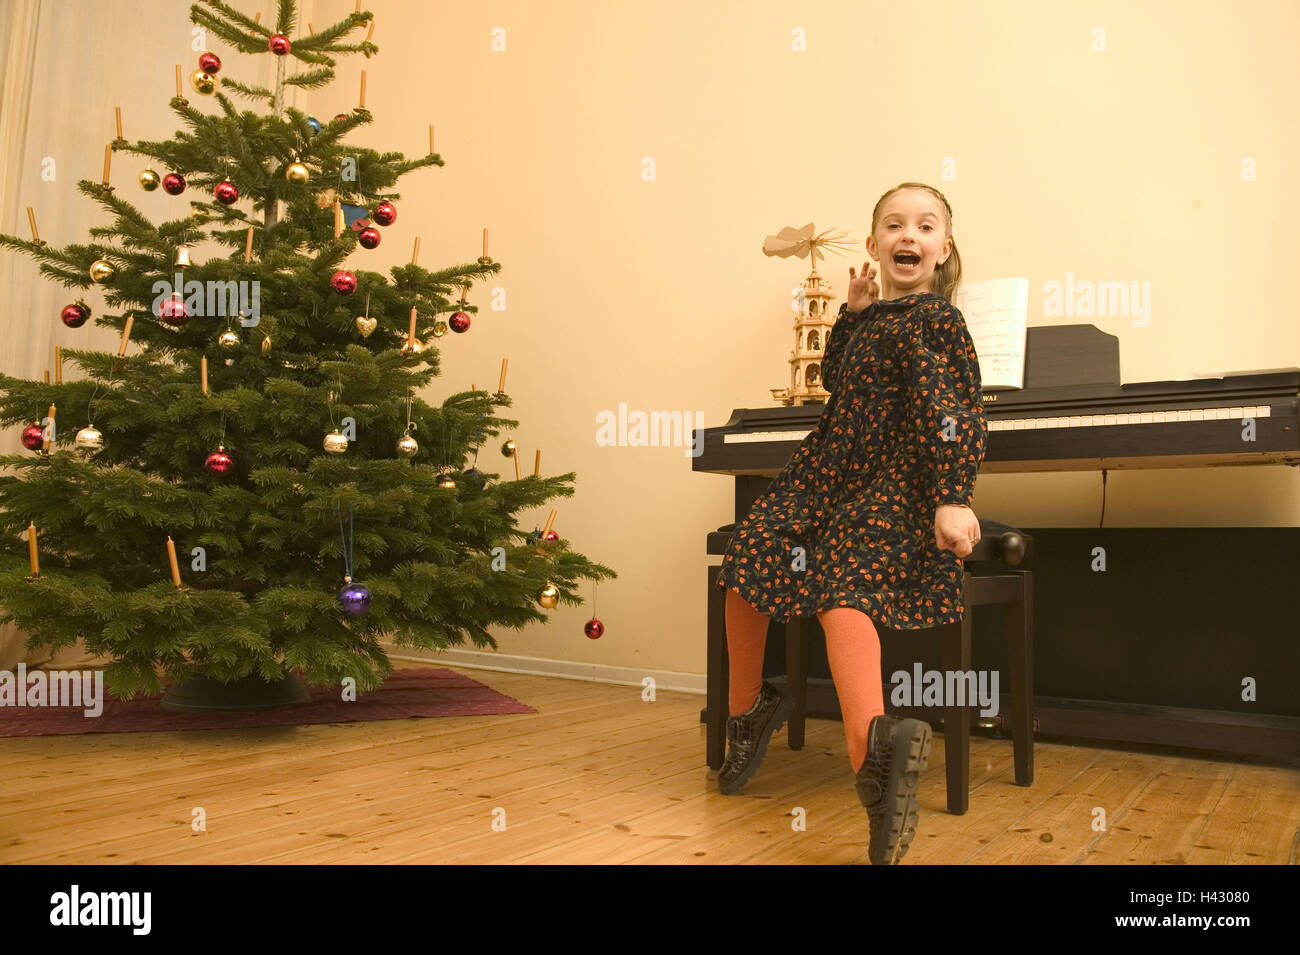 Musical christmas ornaments that play music -  Christmas Eve For Christmas Christmas Tree Child 8 Years Blond Musical Instrument Music To Piano Playings Make Music Play Showing Musically